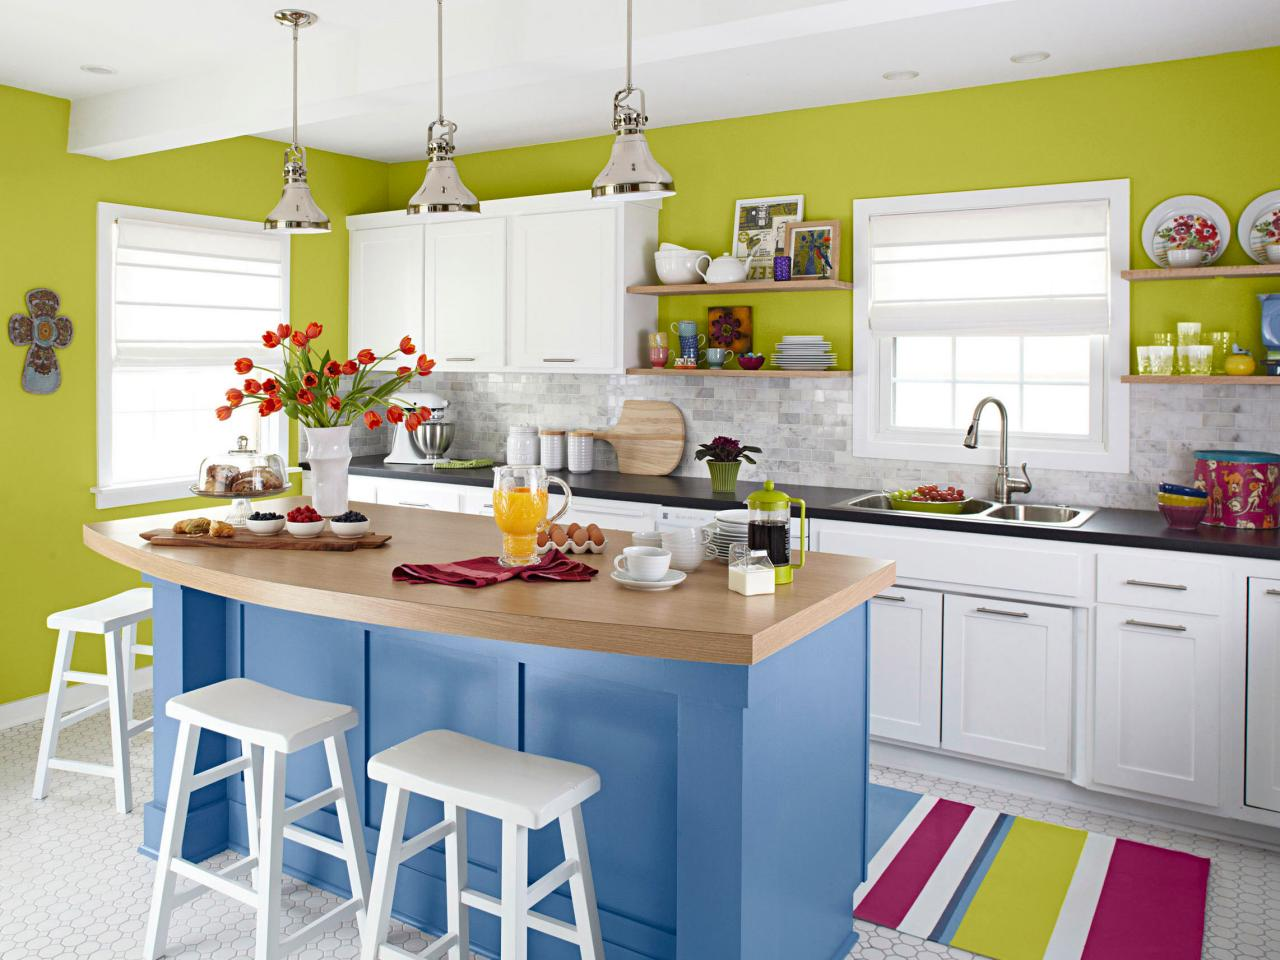 Perky and Playful Kitchen Island Idea